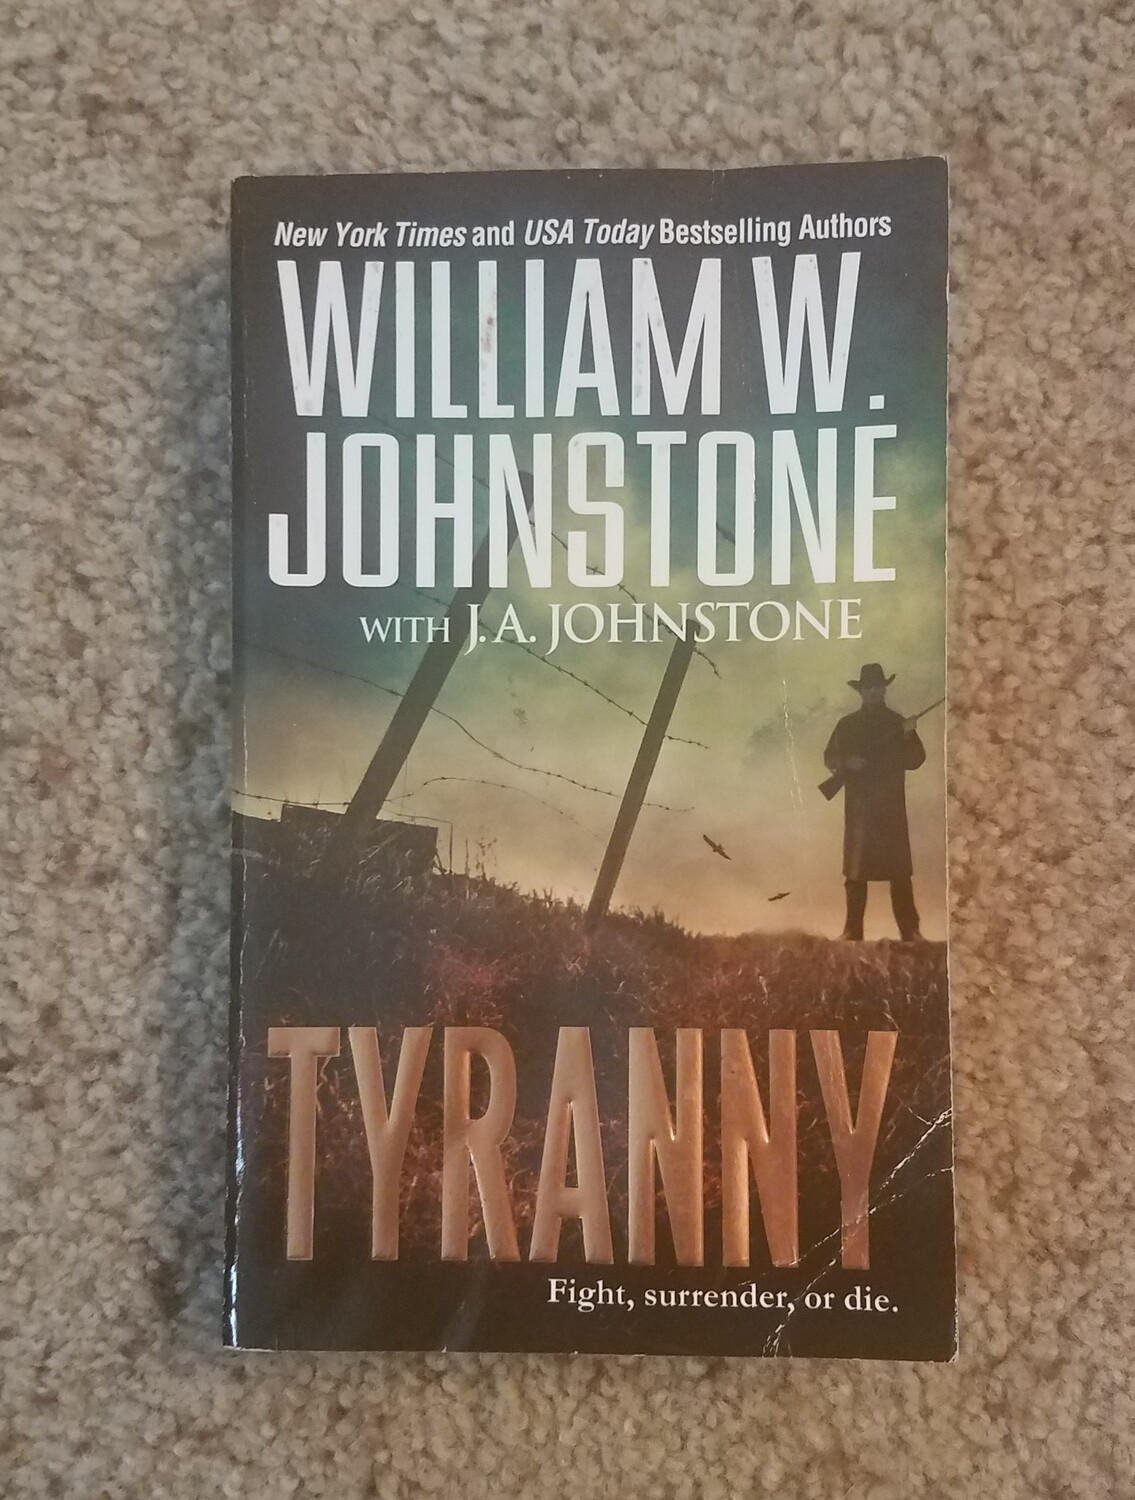 Tyranny by William W. Johnstone with J.A. Johnstone